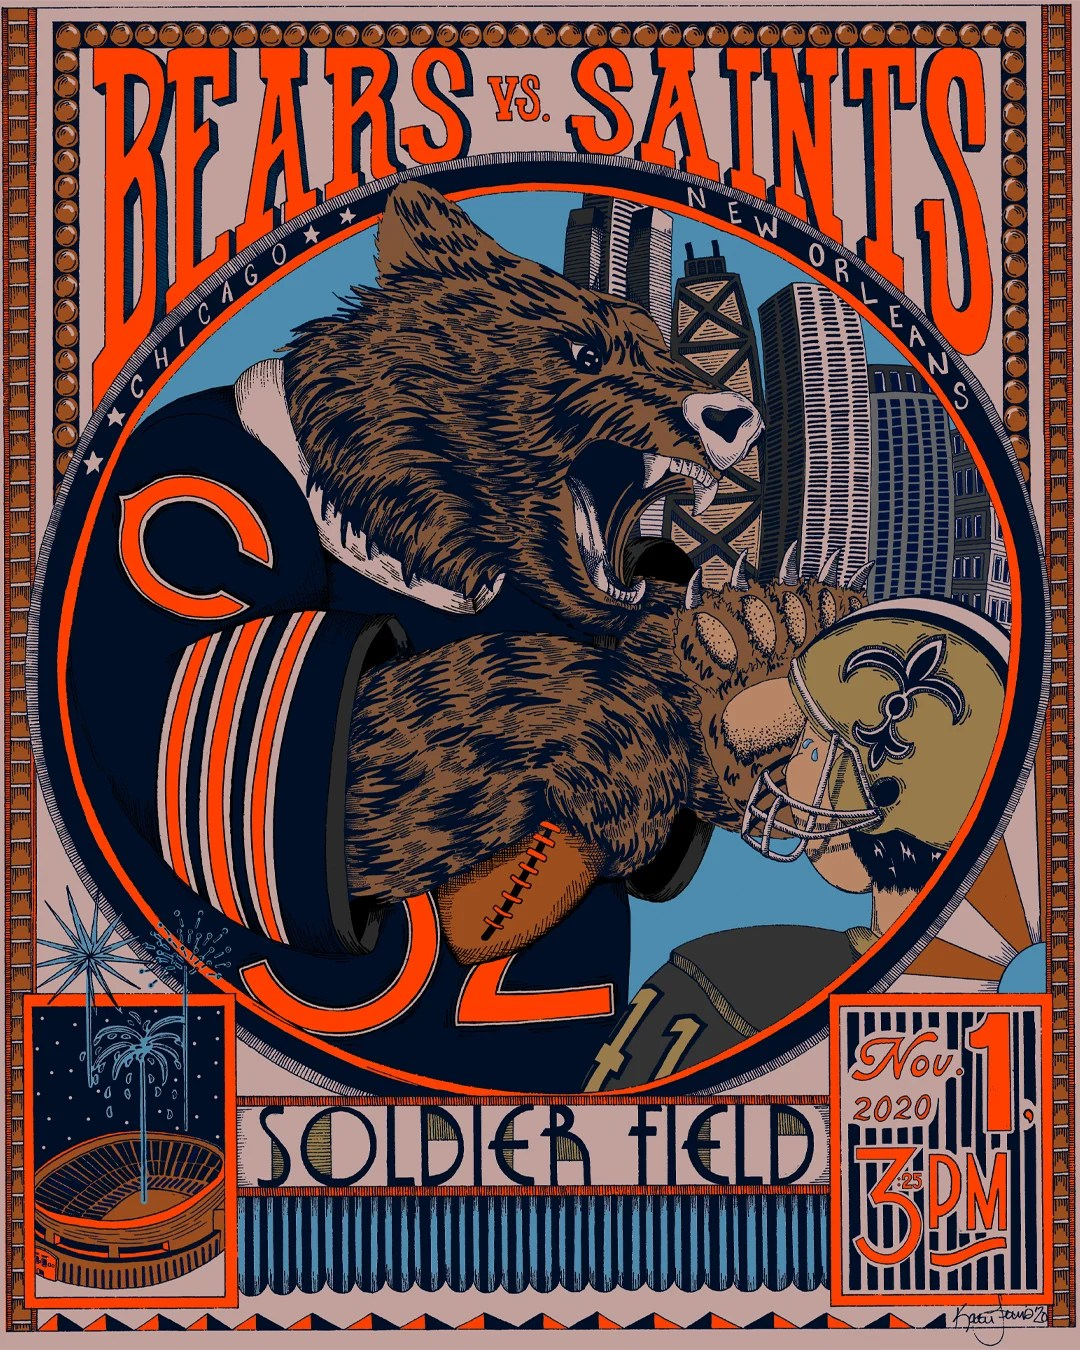 gameday poster series chicago bears